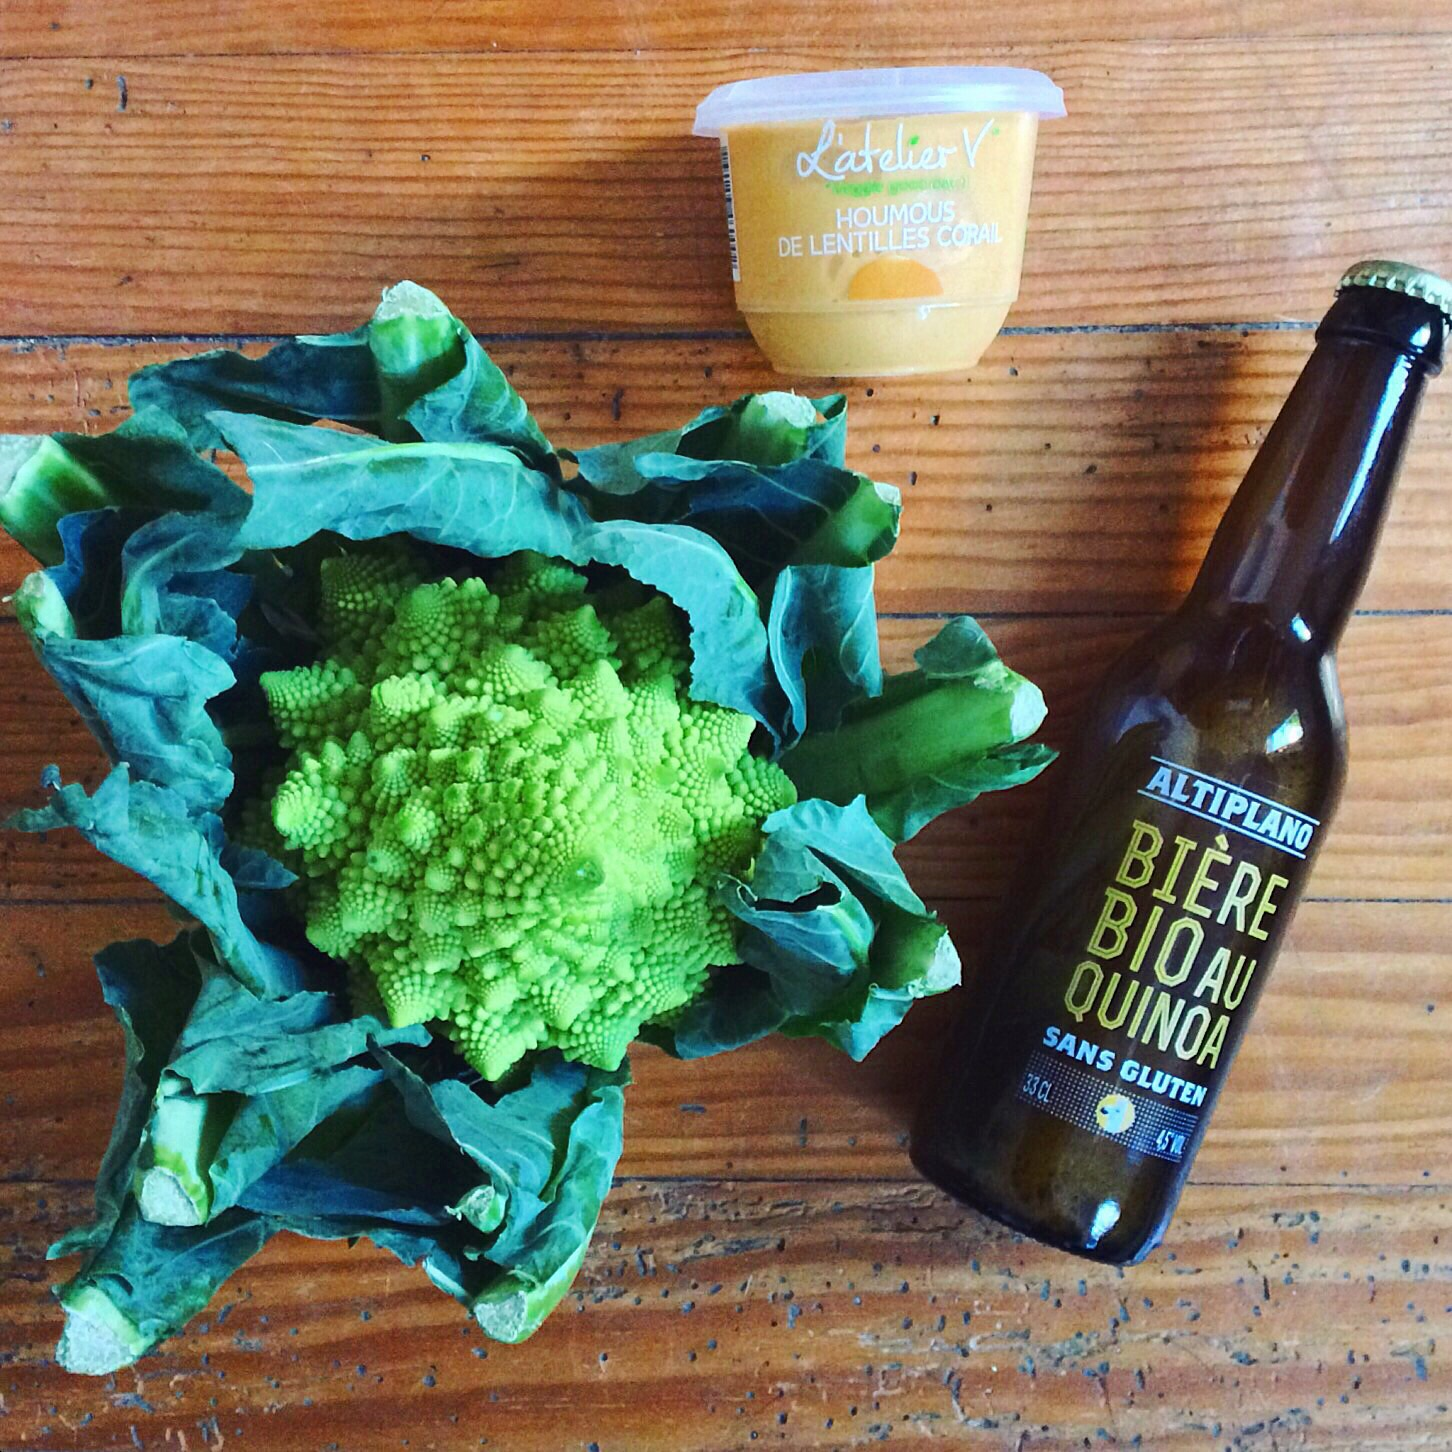 romanesco broccoli, quinoa beer, red lentil hummus